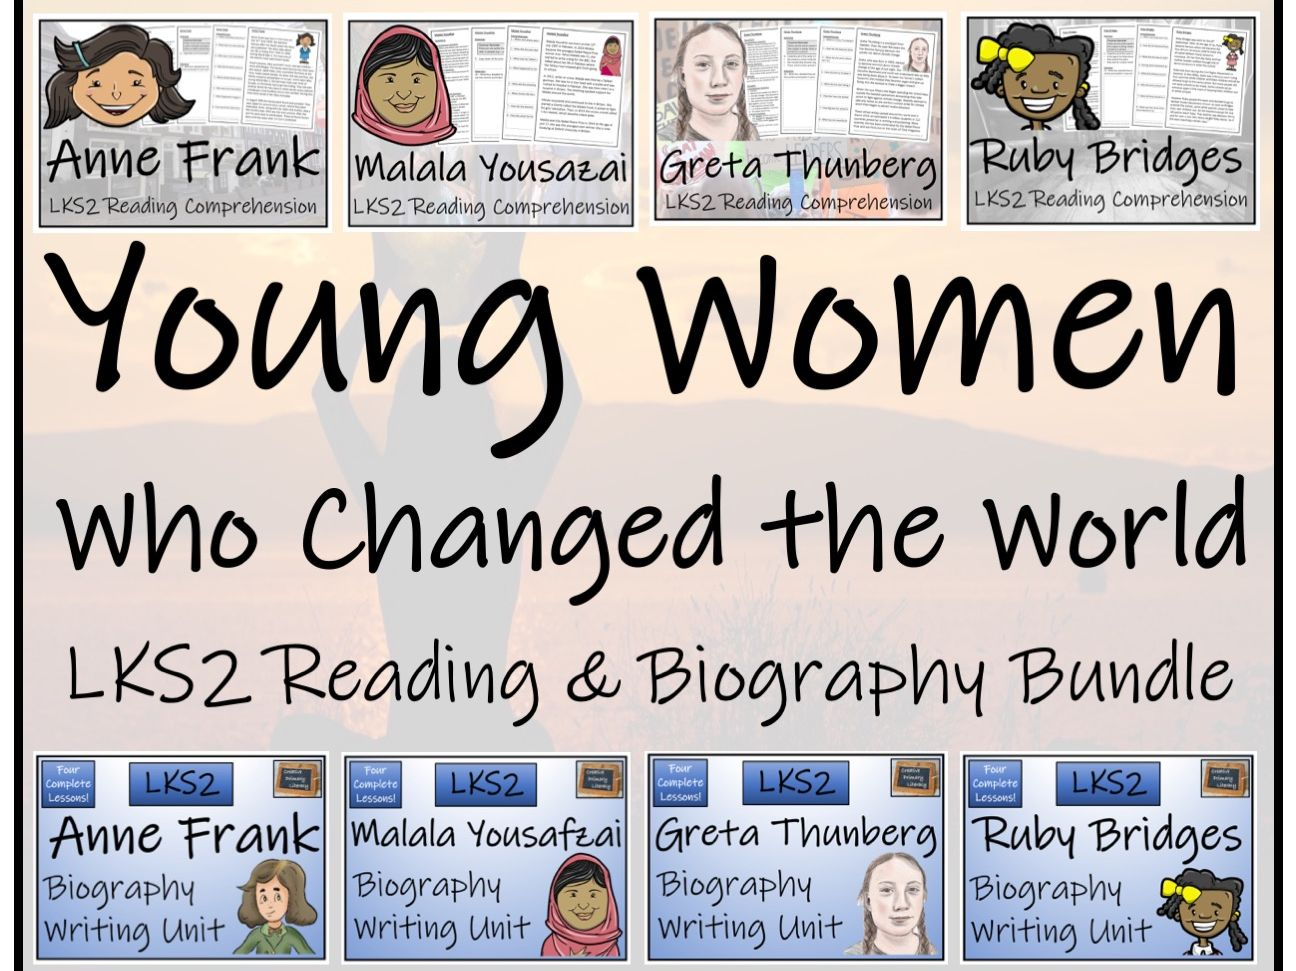 LKS2 - Young Women Who Changed the World Reading Comprehension & Biography Bundle